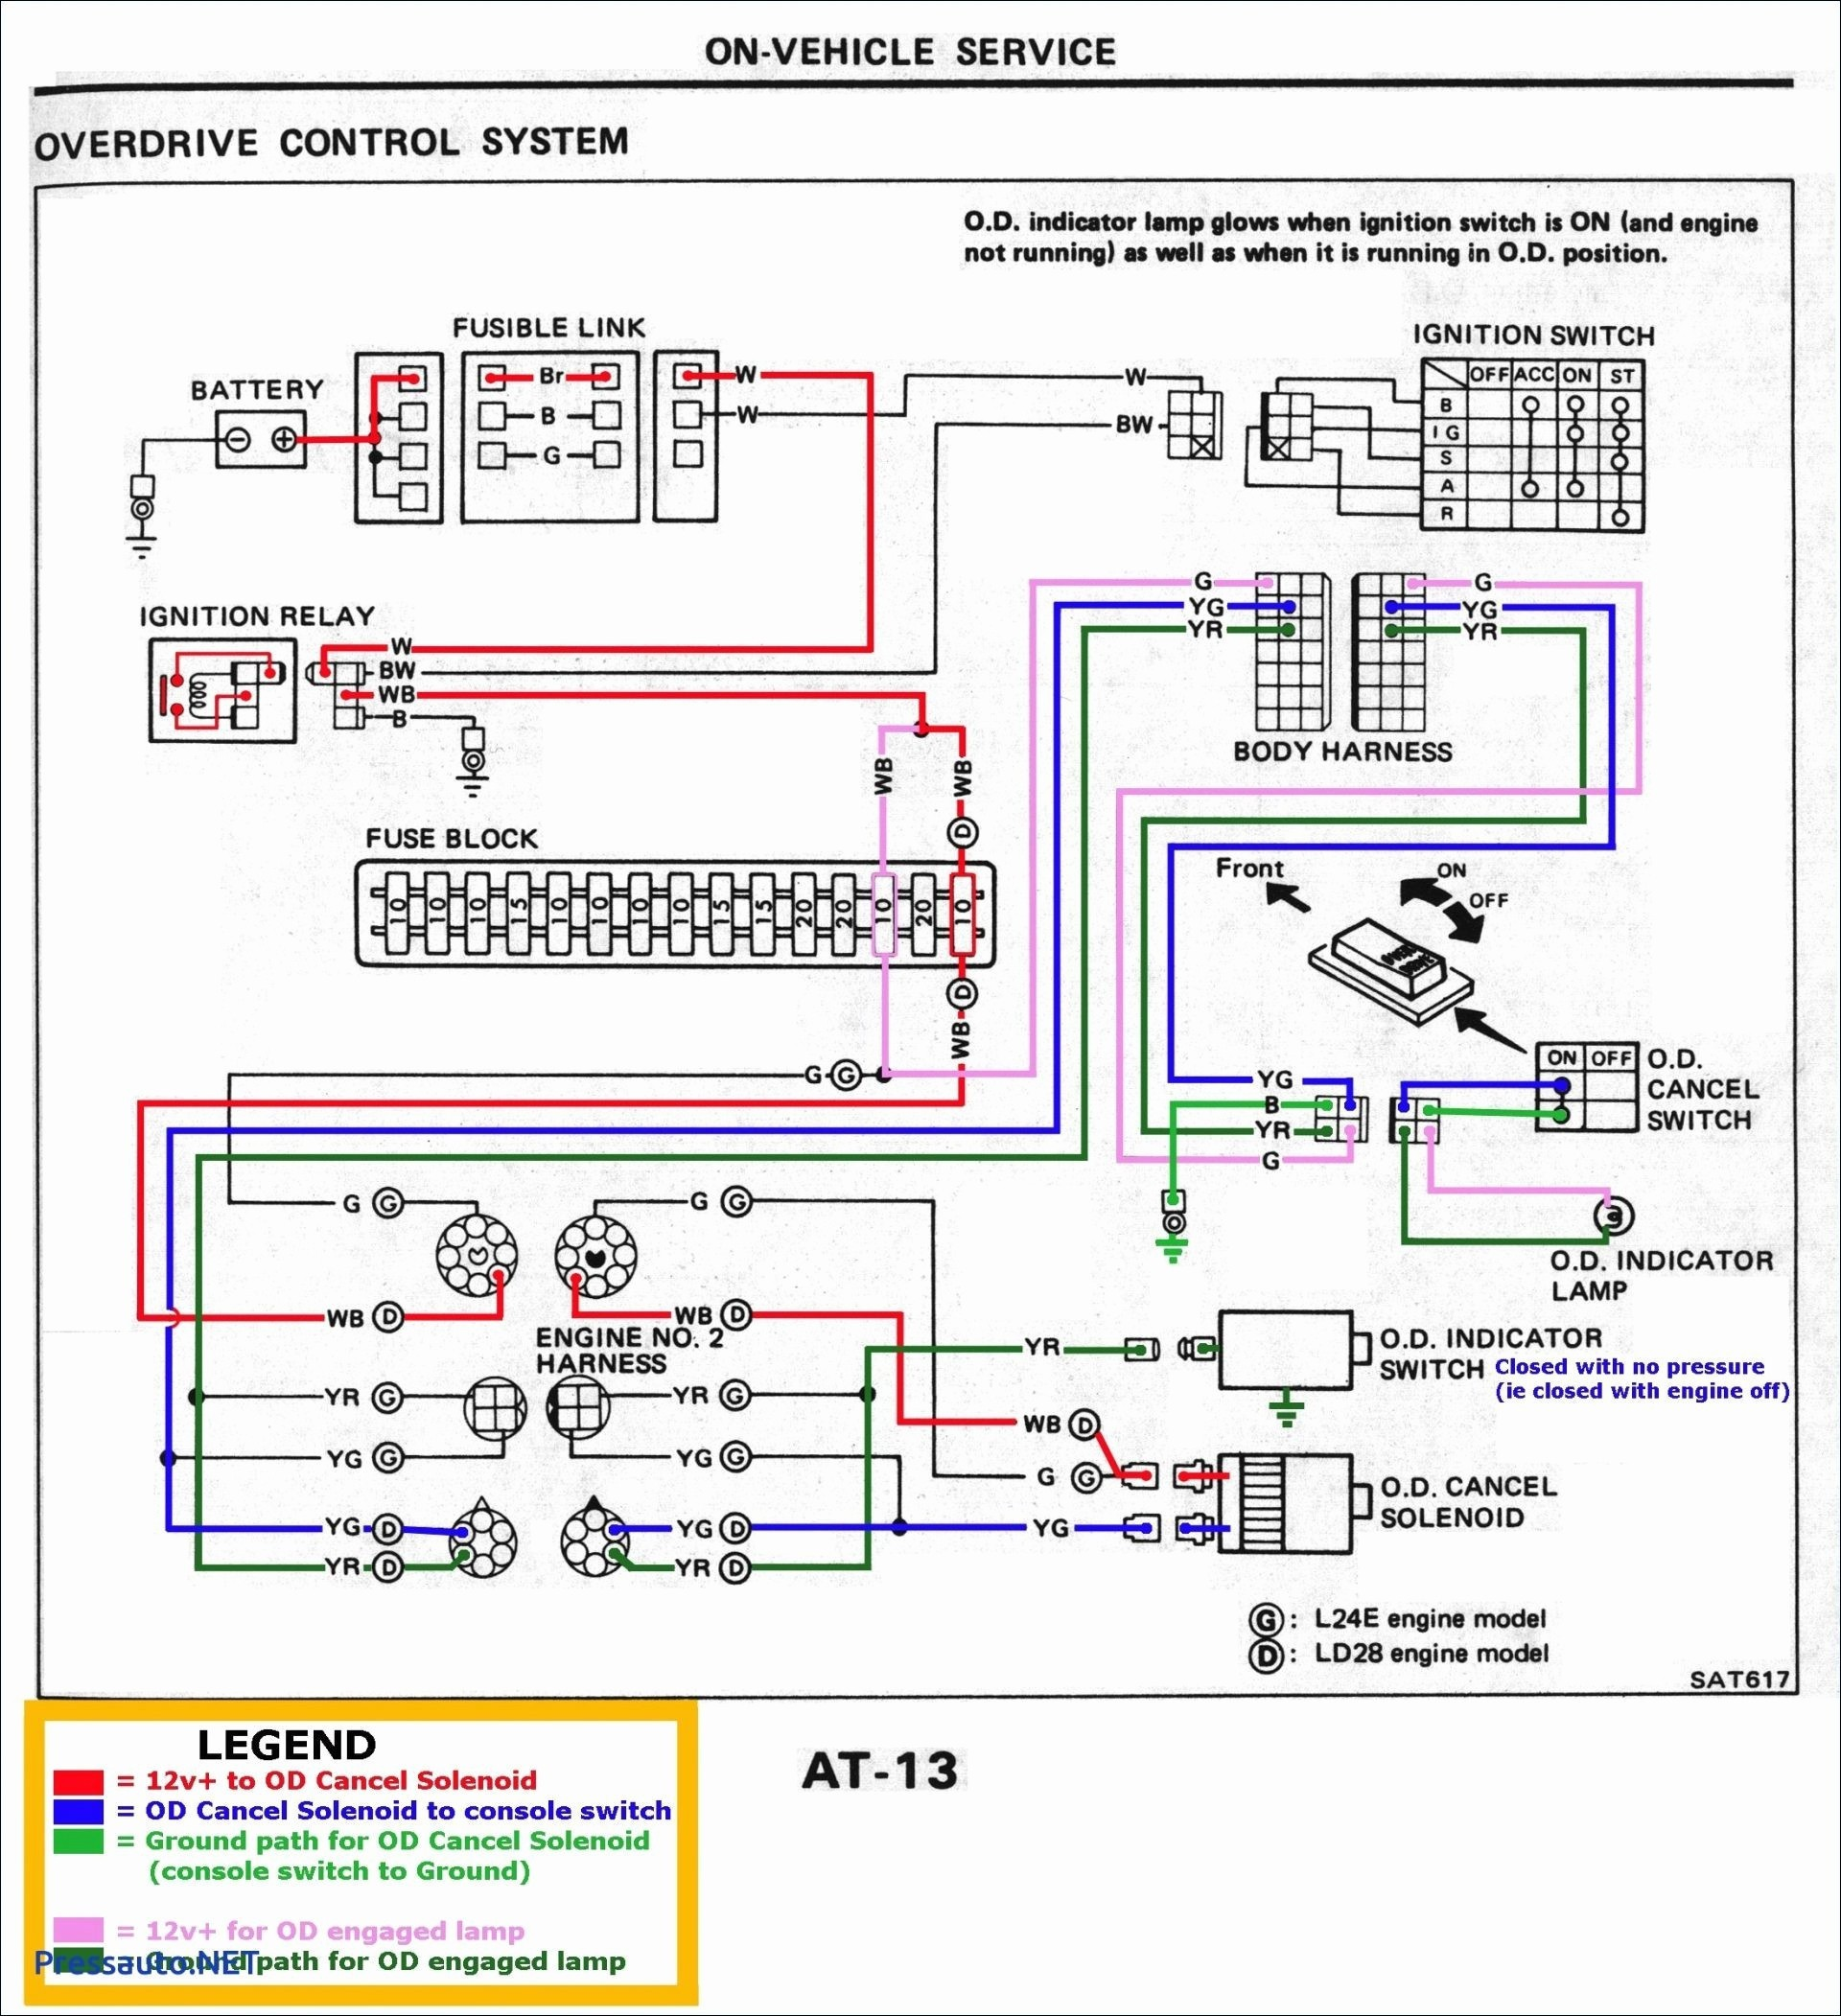 Push Button Switch Wiring Diagram New Push Button Switch Wiring Diagram Free Downloads Wiring Diagram For